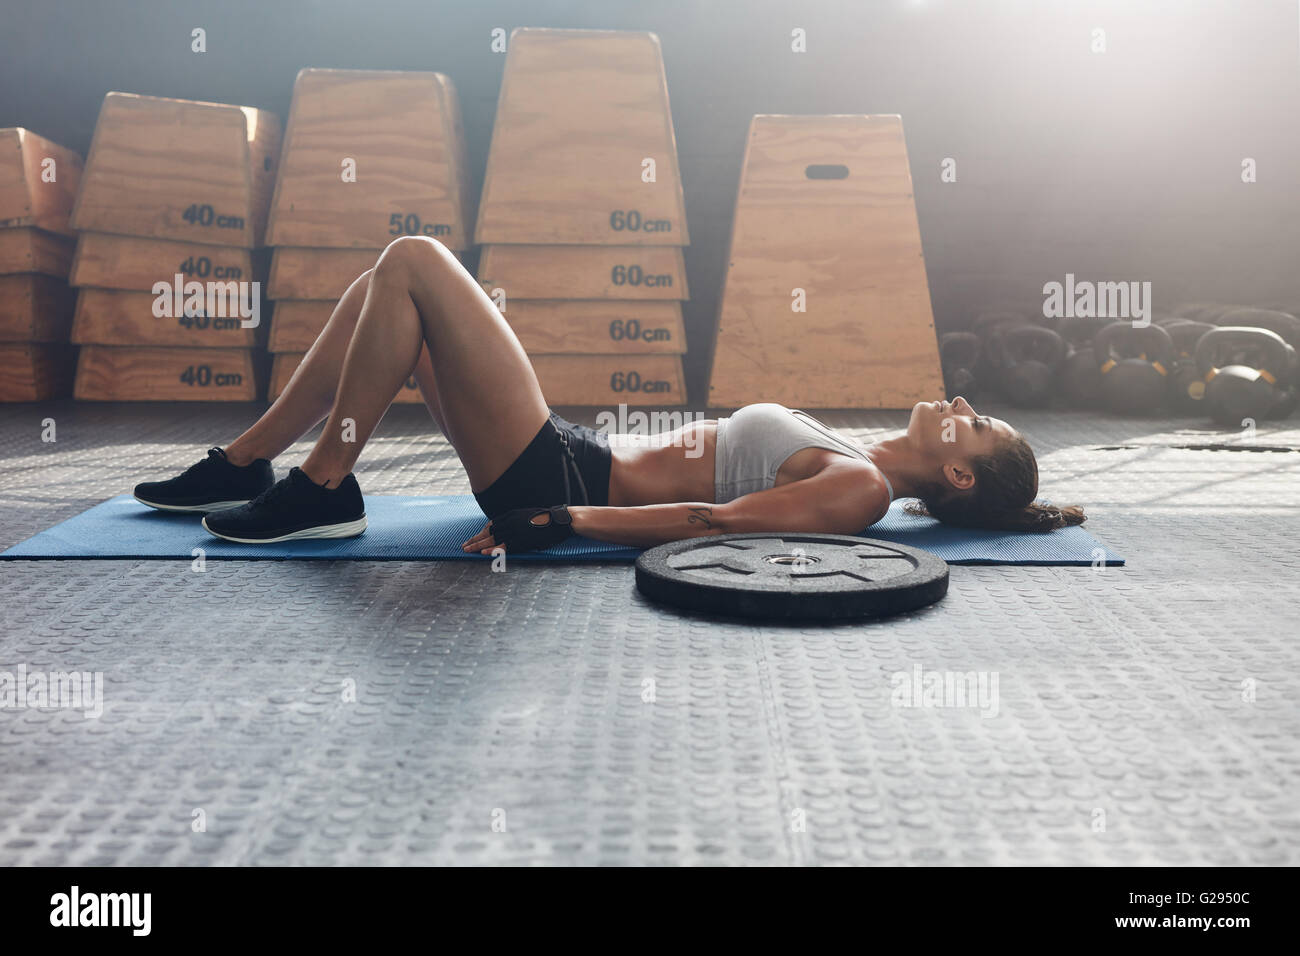 Side view shot of fitness woman resting on exercise mat with a heavy weight plate on floor. Female athlete lying - Stock Image